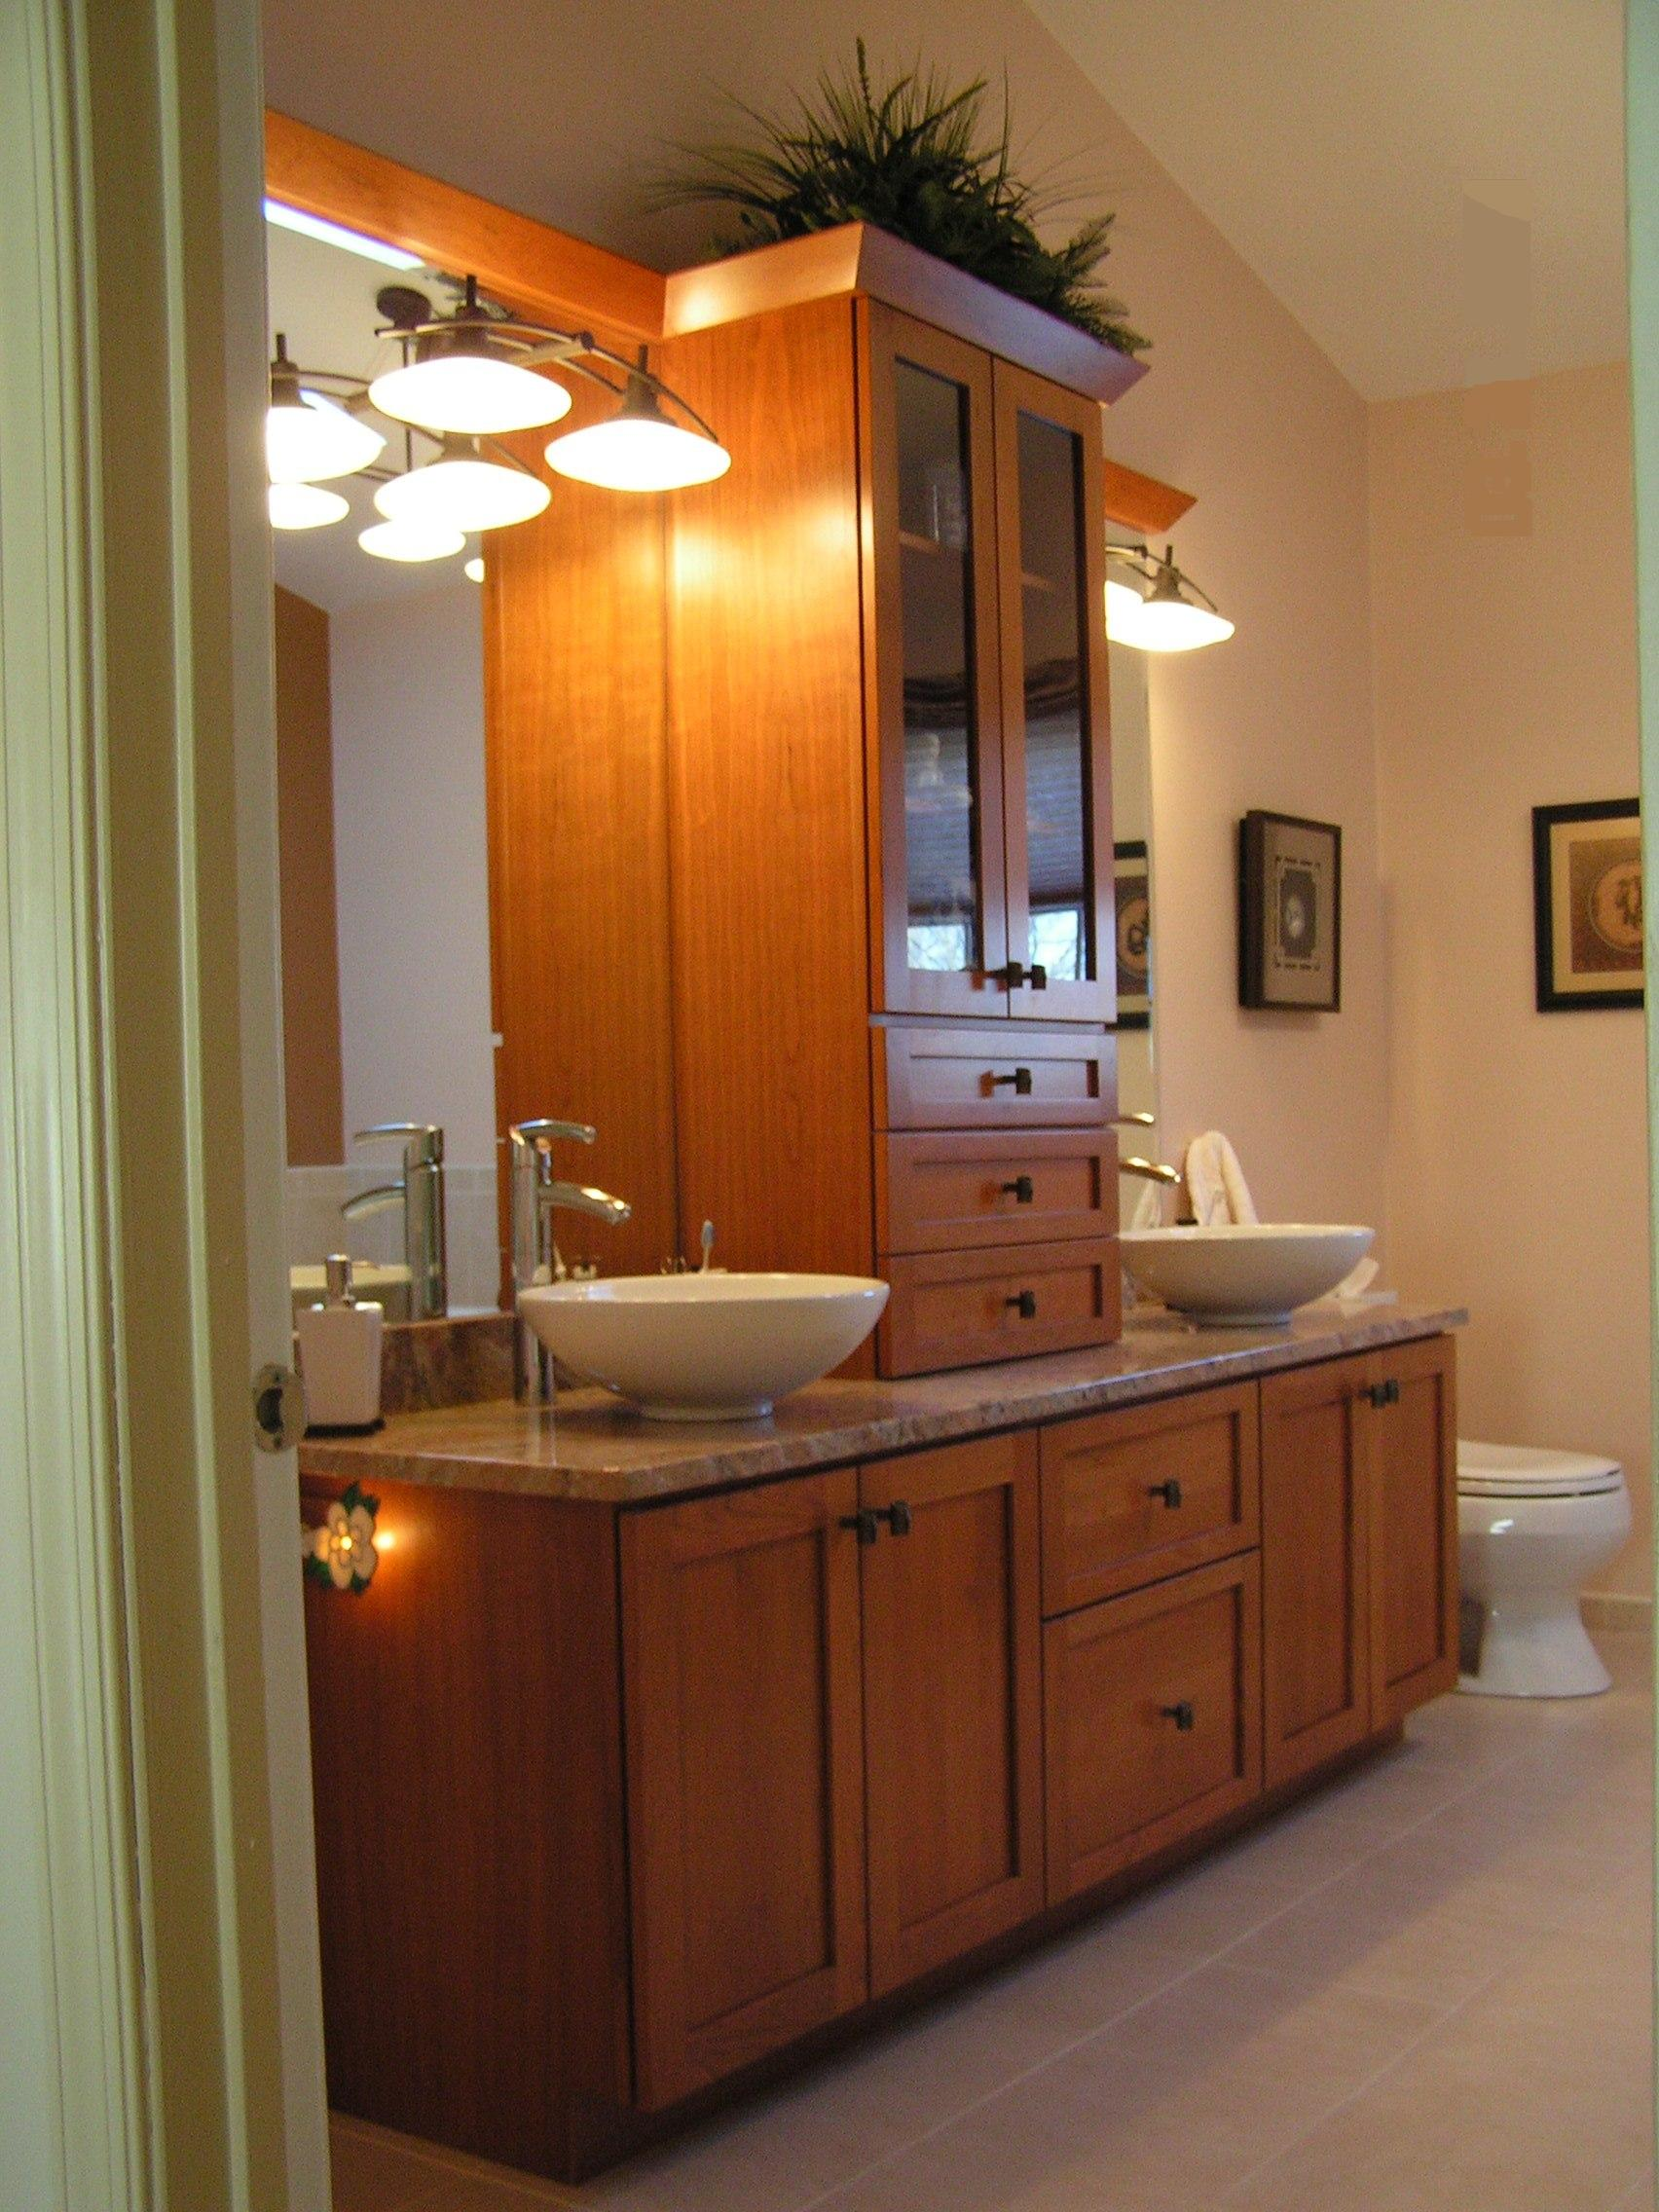 Bathroom wooden cabinet